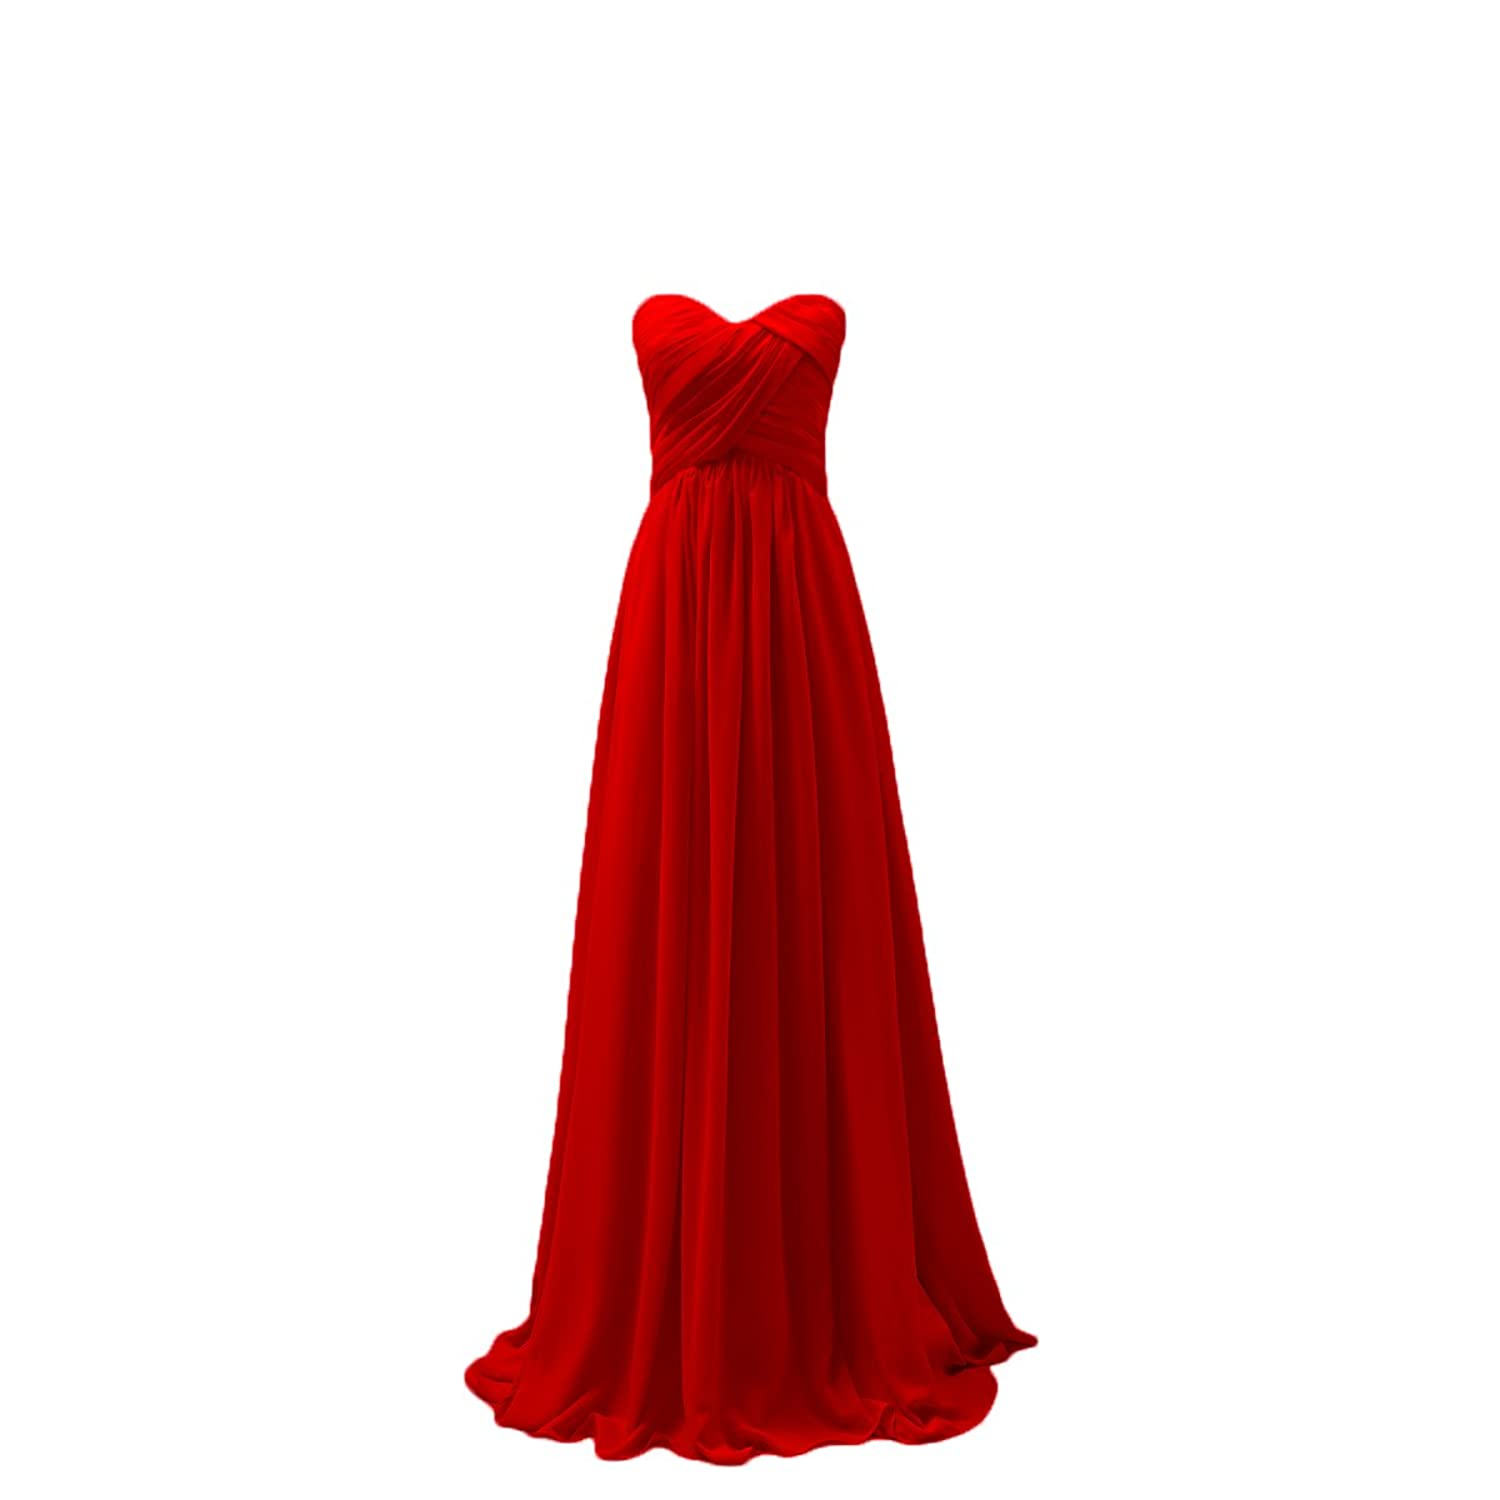 Bridal Mall Women's Sweetheart Bridesmaid dresses Party Evening Dresses